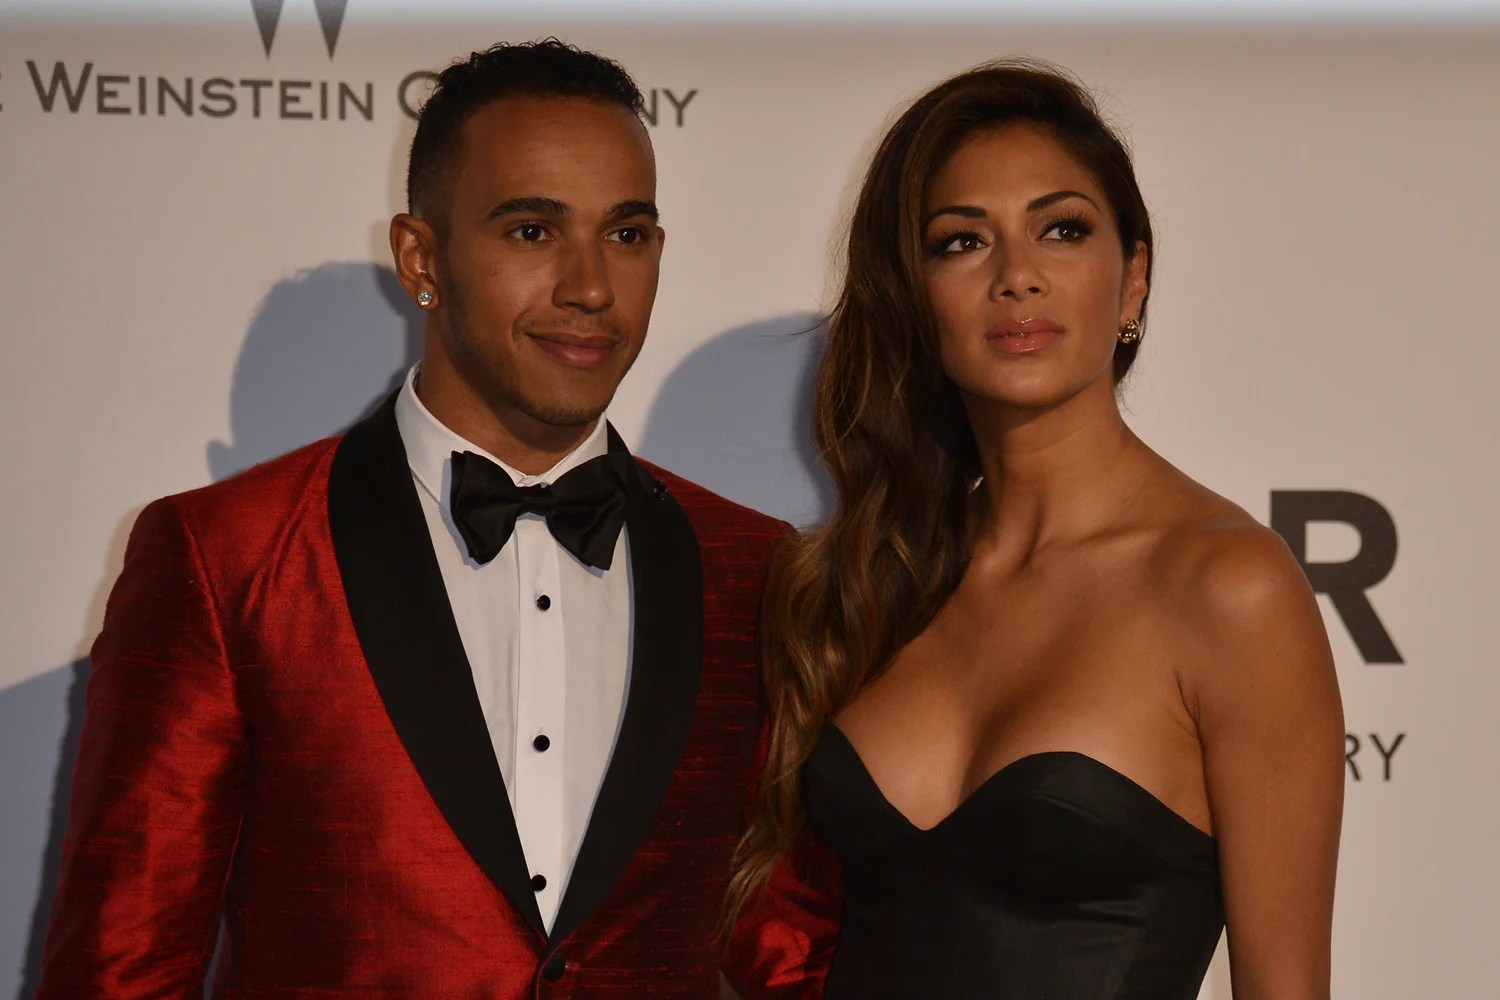 Nicole Scherzinger and Lewis Hamilton 'have intimate video leaked'